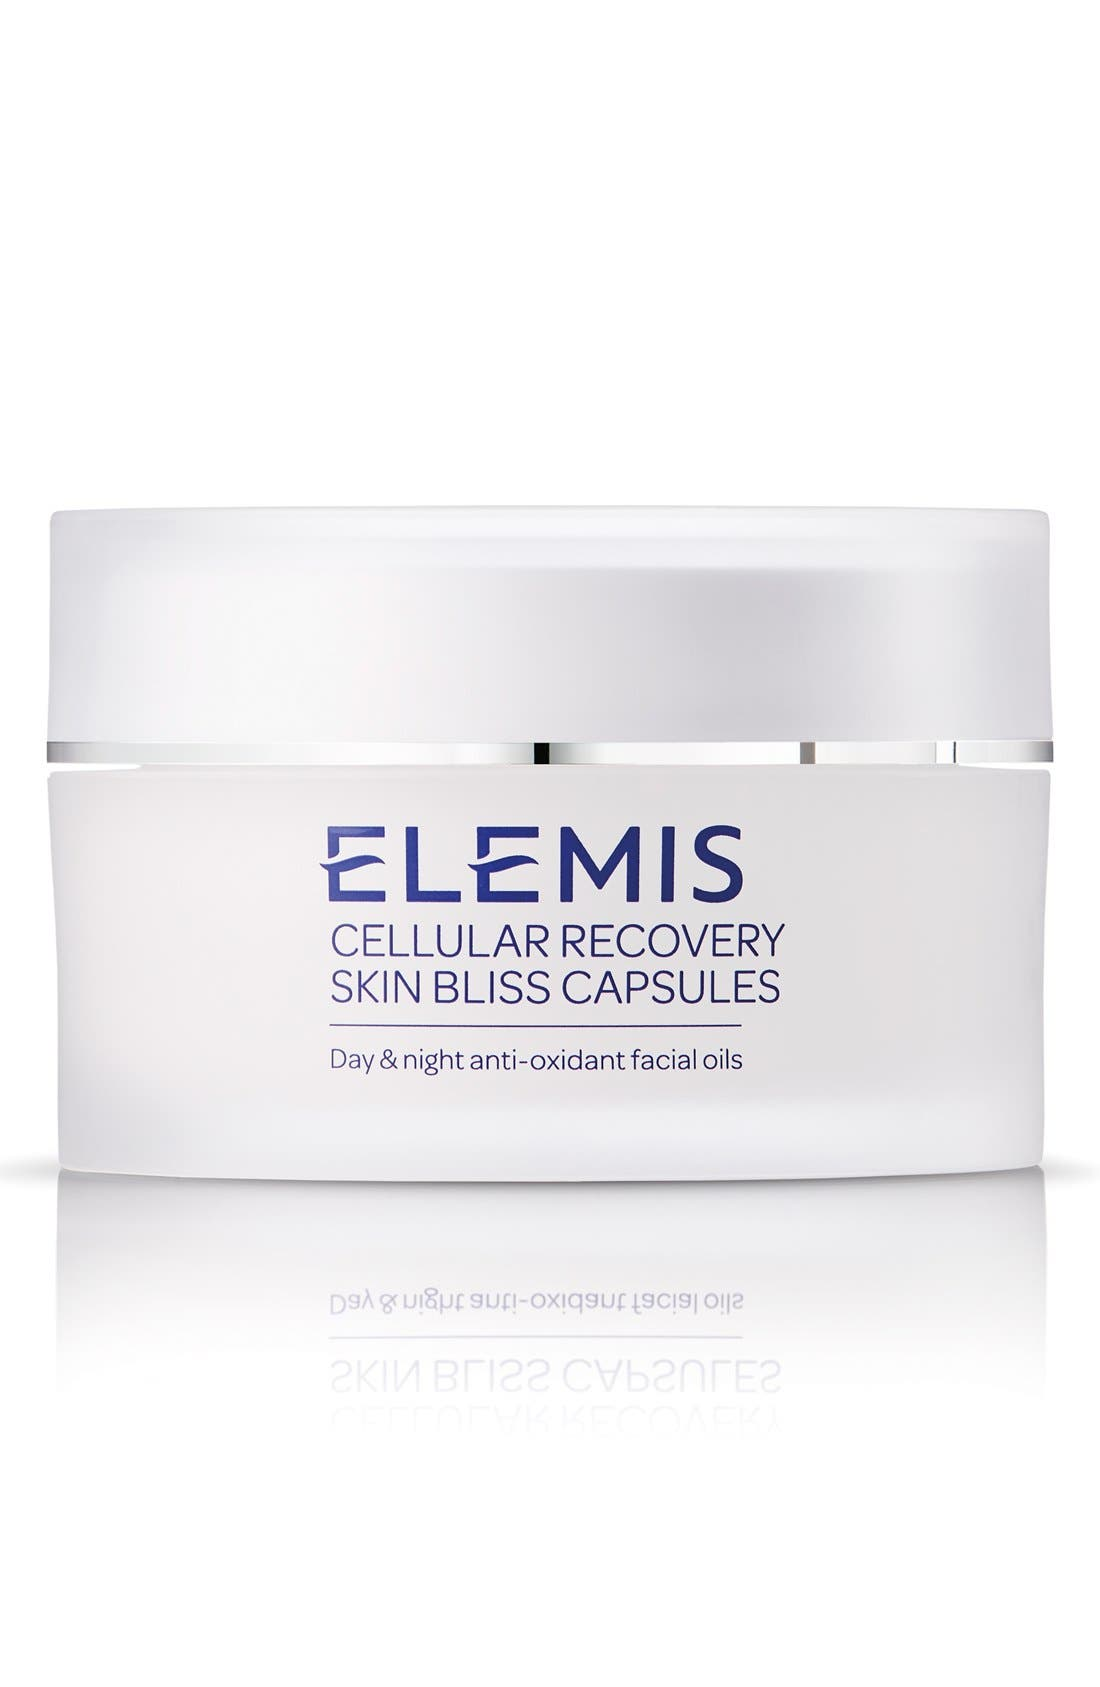 Cellular Recovery Skin Bliss Capsules,                             Main thumbnail 1, color,                             NONE